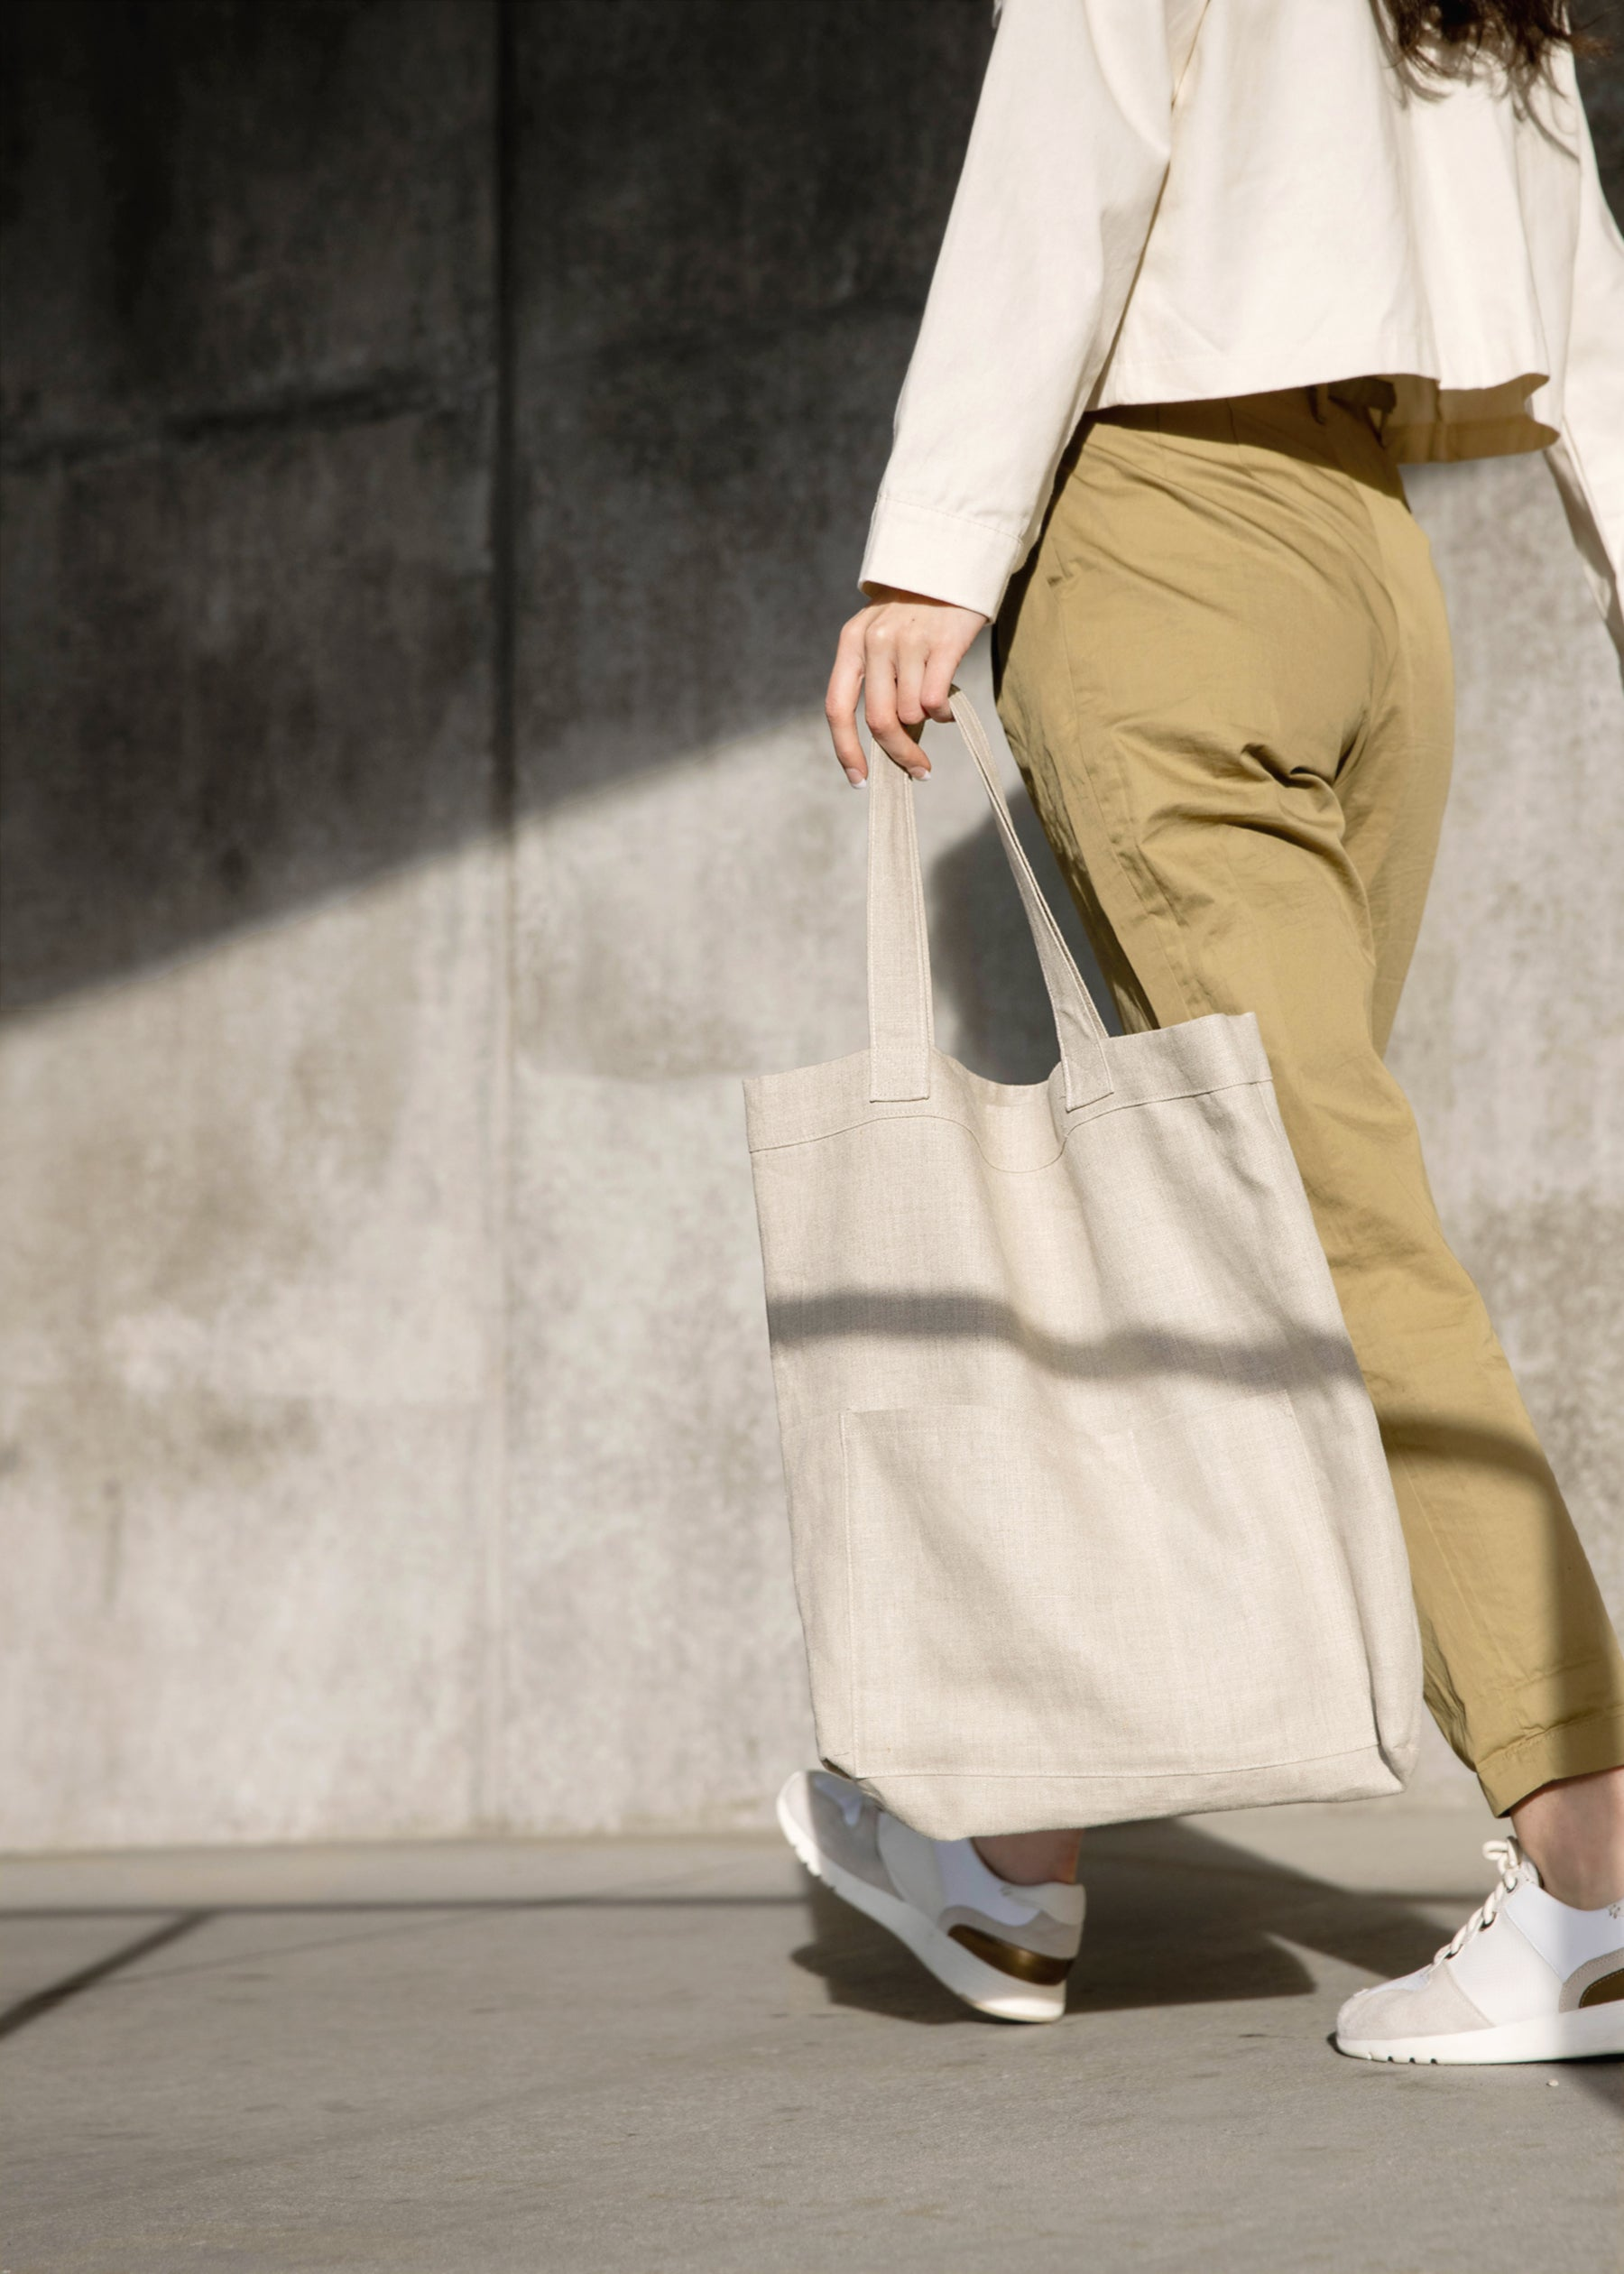 Model holding the Mitaka large bag